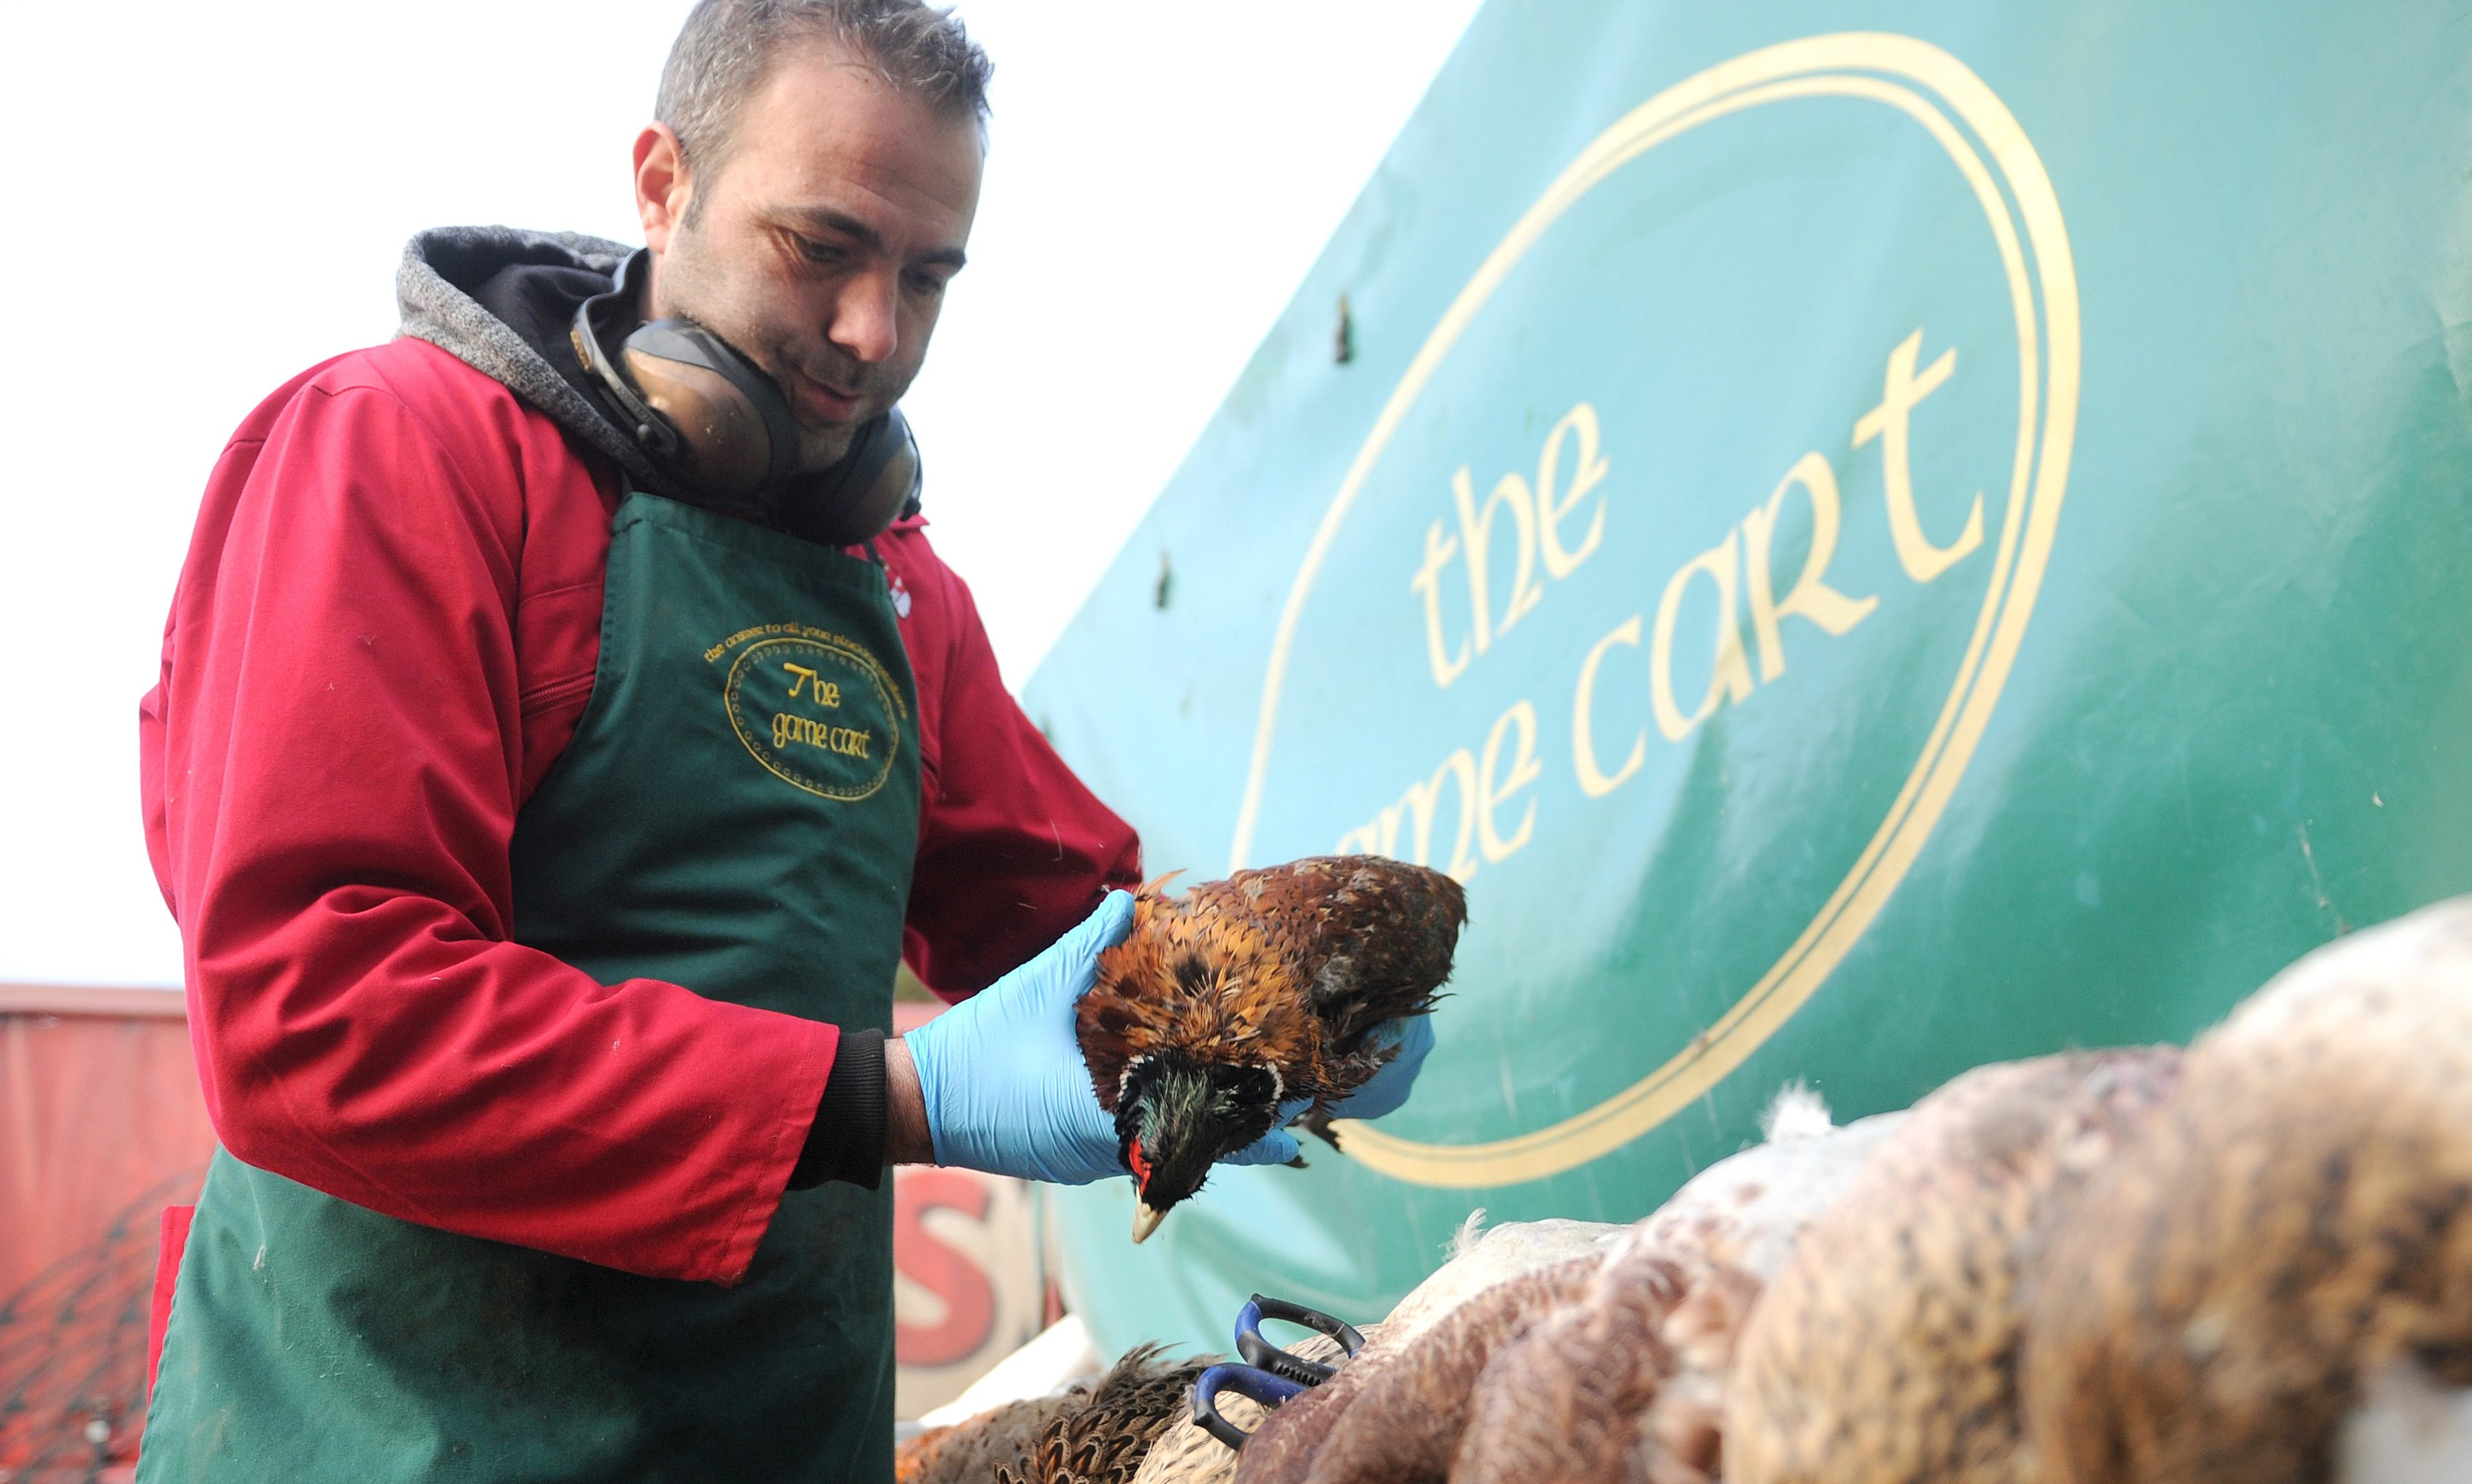 Donny Prodanov processing some of the game birds ahead of Christmas at The Game Cart